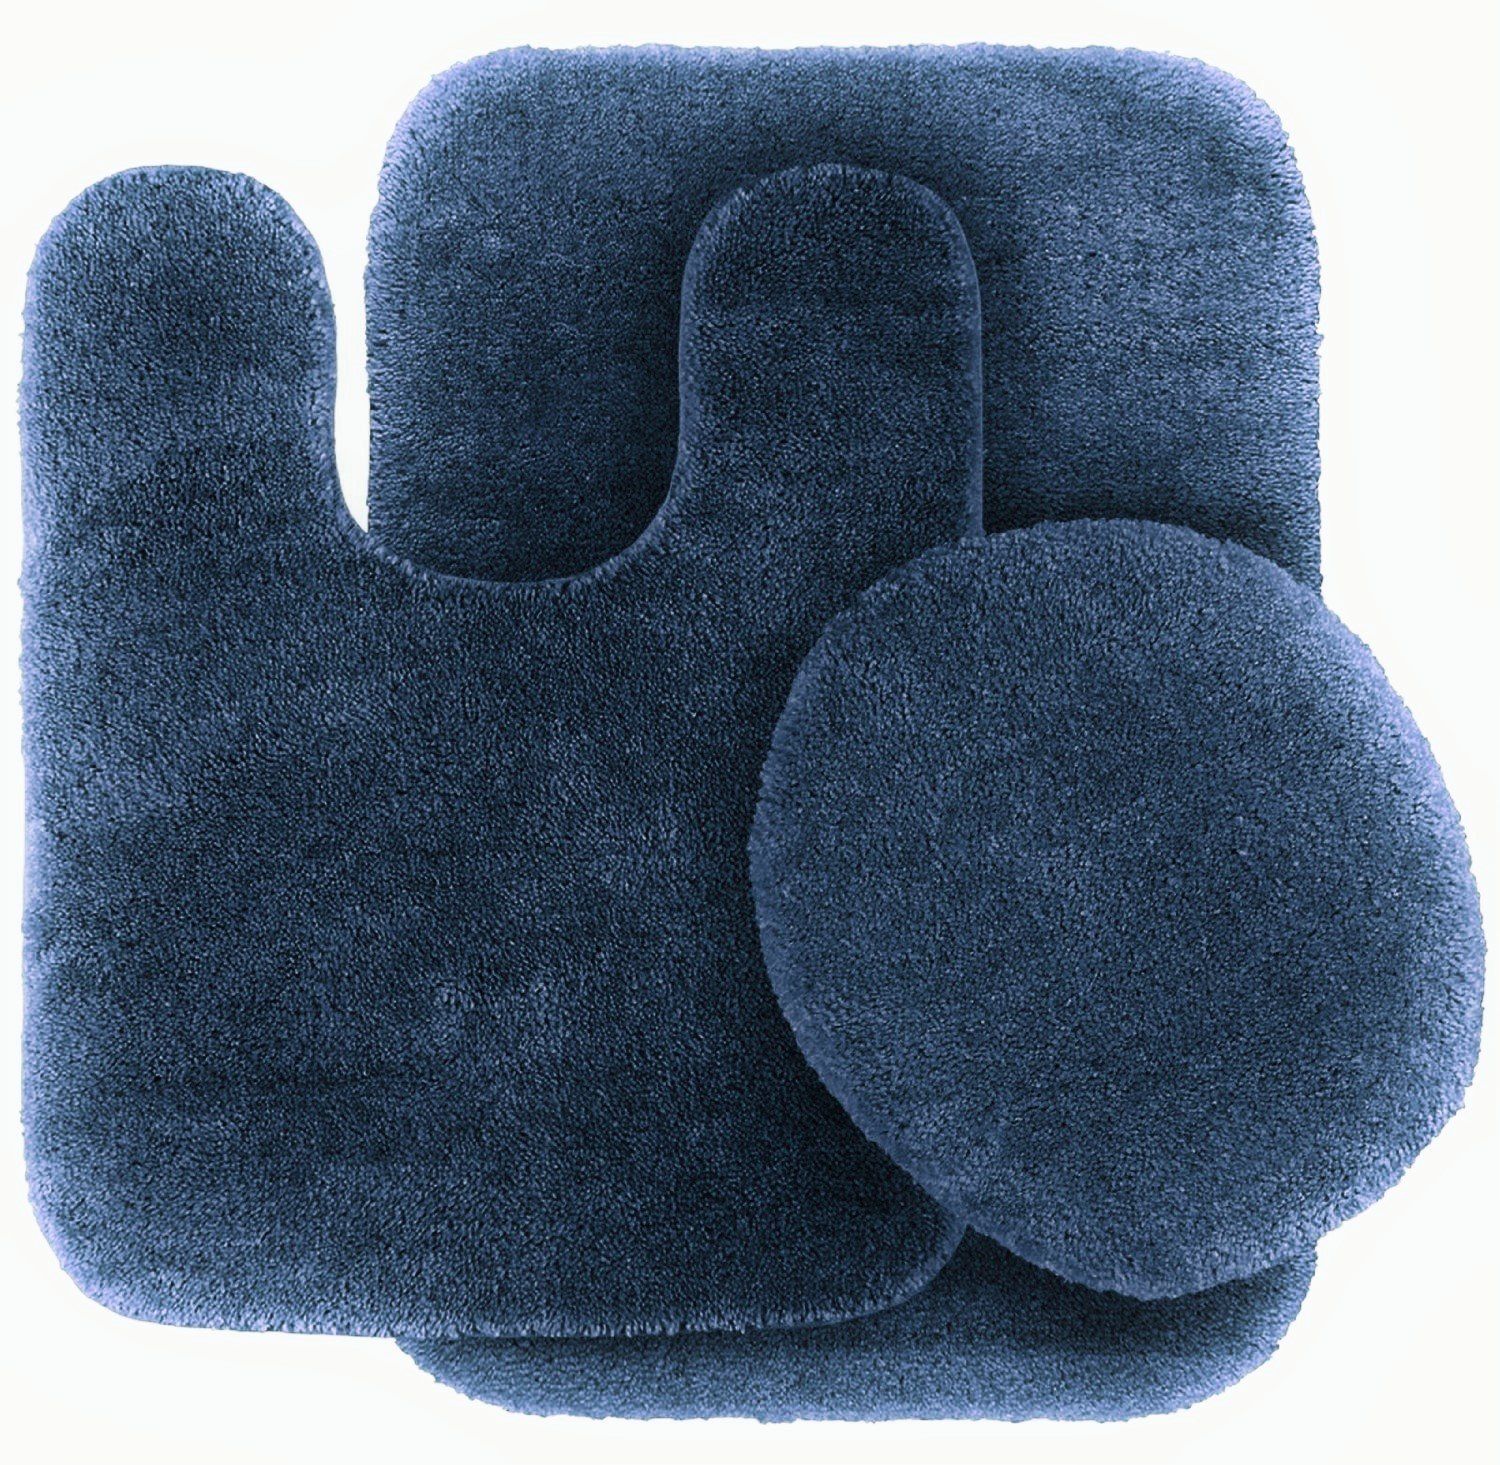 3 Pc NAVY BLUE Bathroom Set Bath Mat RUG, Contour, and Toilet Lid Cover, with Rubber Backing #6